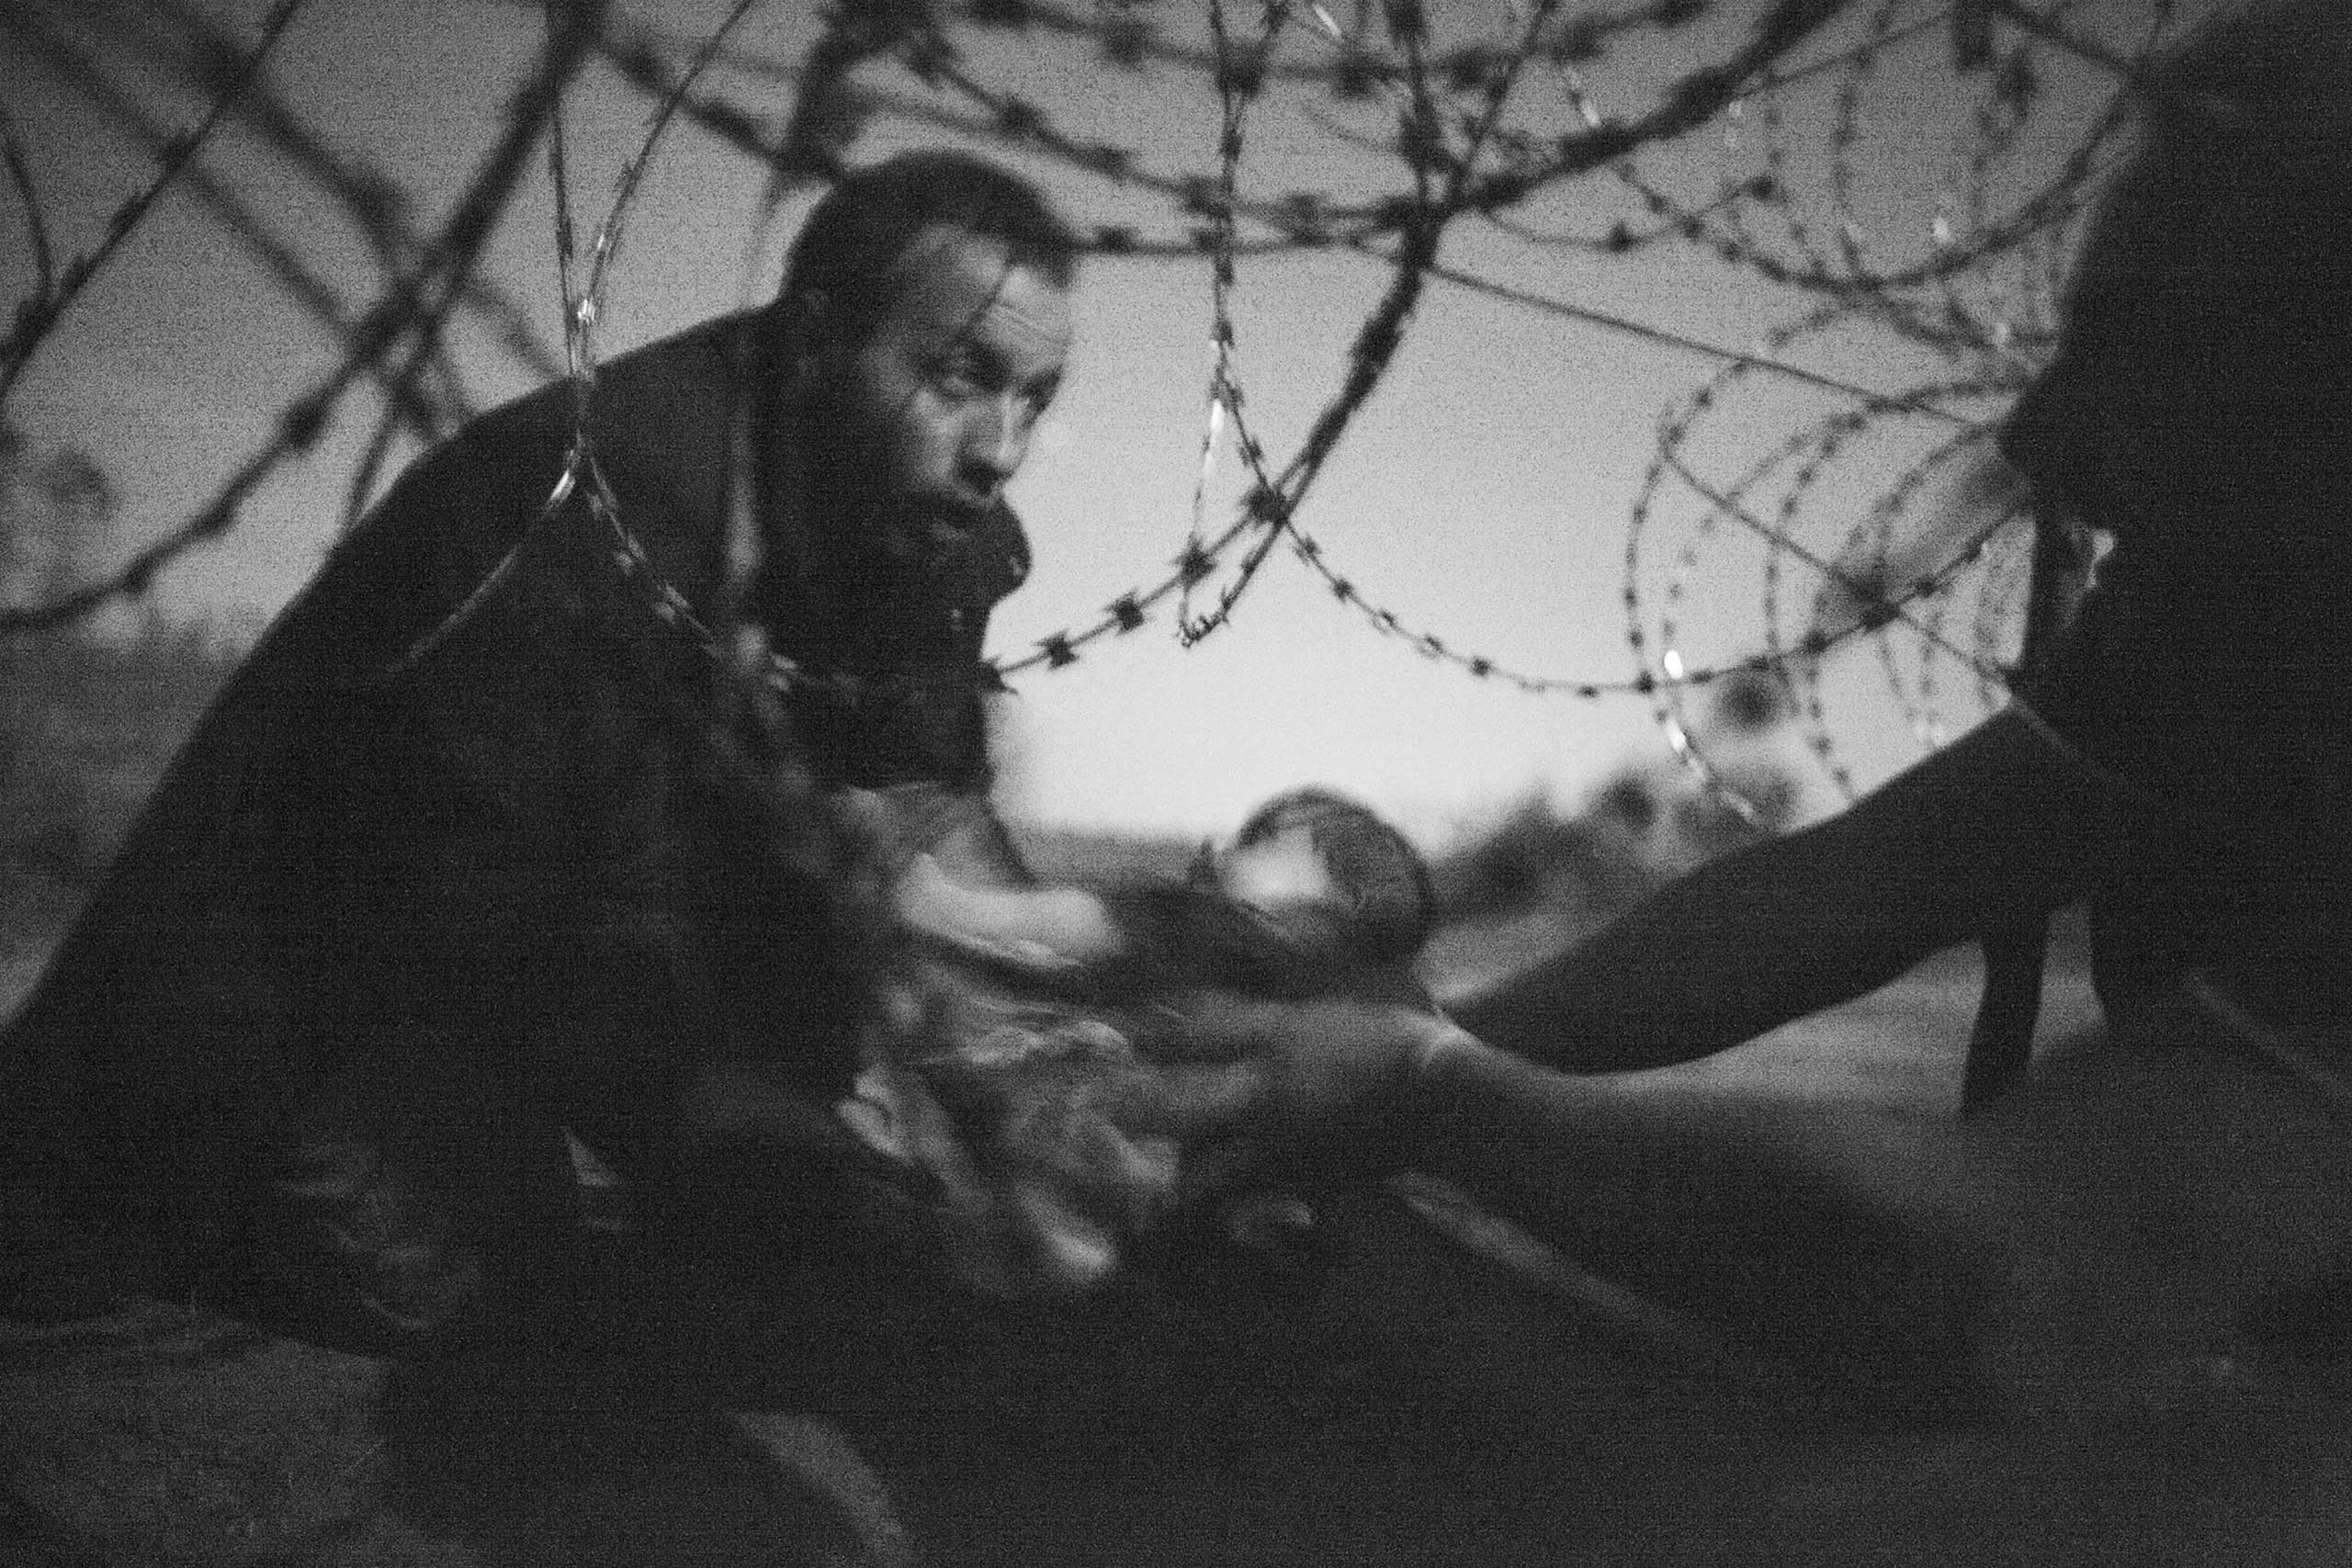 Spot News, 1st prize singles and World Press Photo of the Year. A man passes a baby through the fence at the Hungarian-Serbian border in Röszke, Hungary, Aug. 28, 2015.